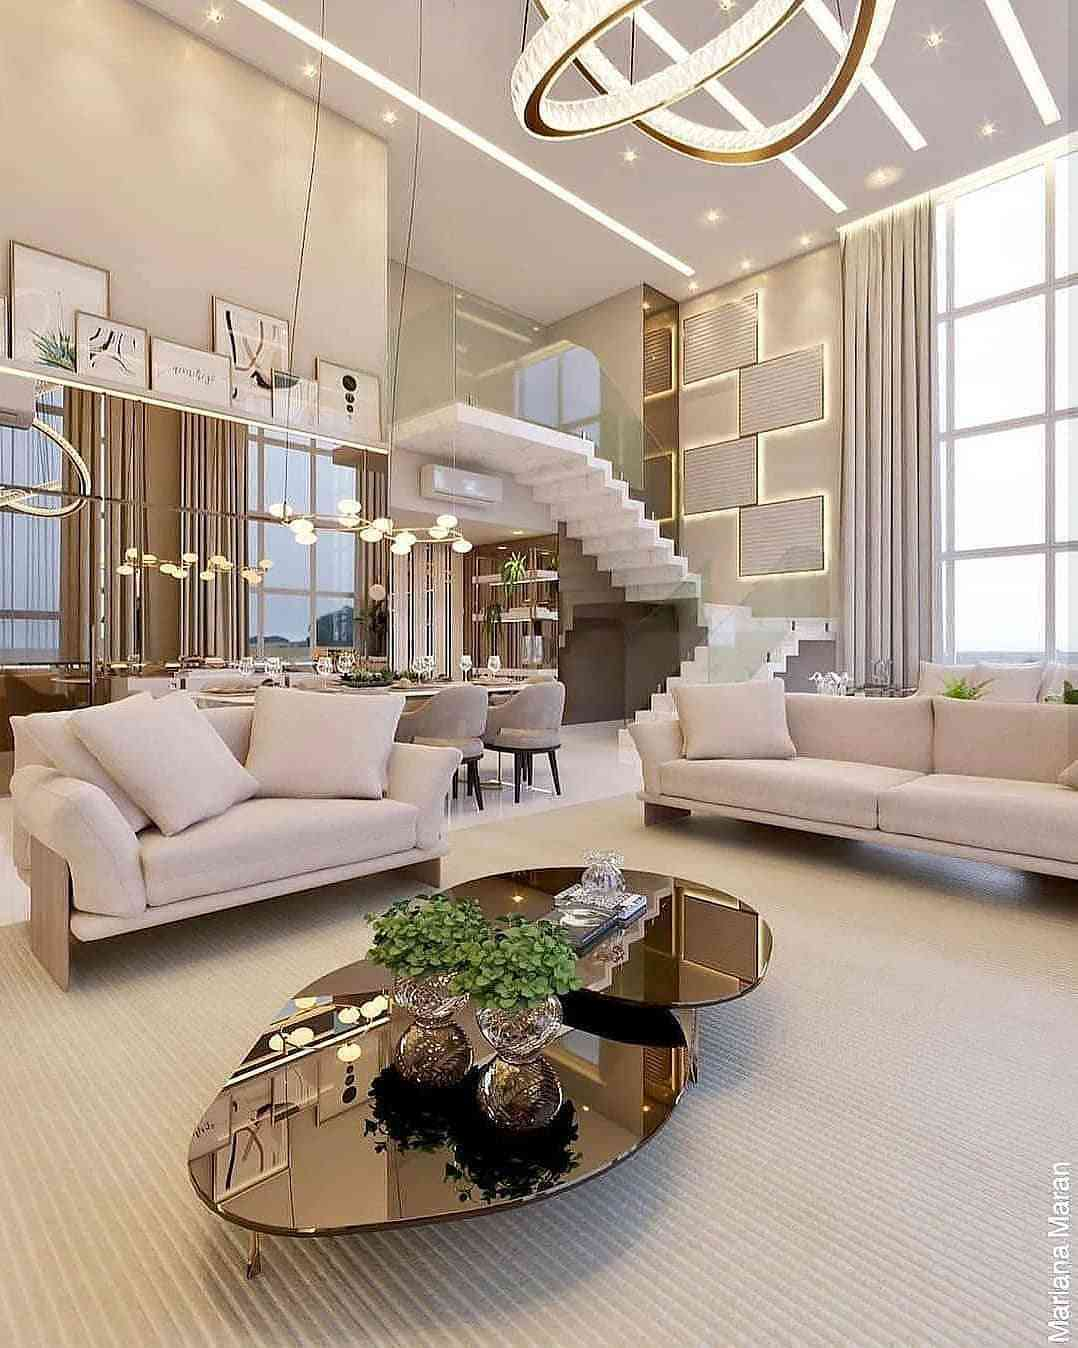 35 Beautiful Home Design Pictures & Ideas images 5